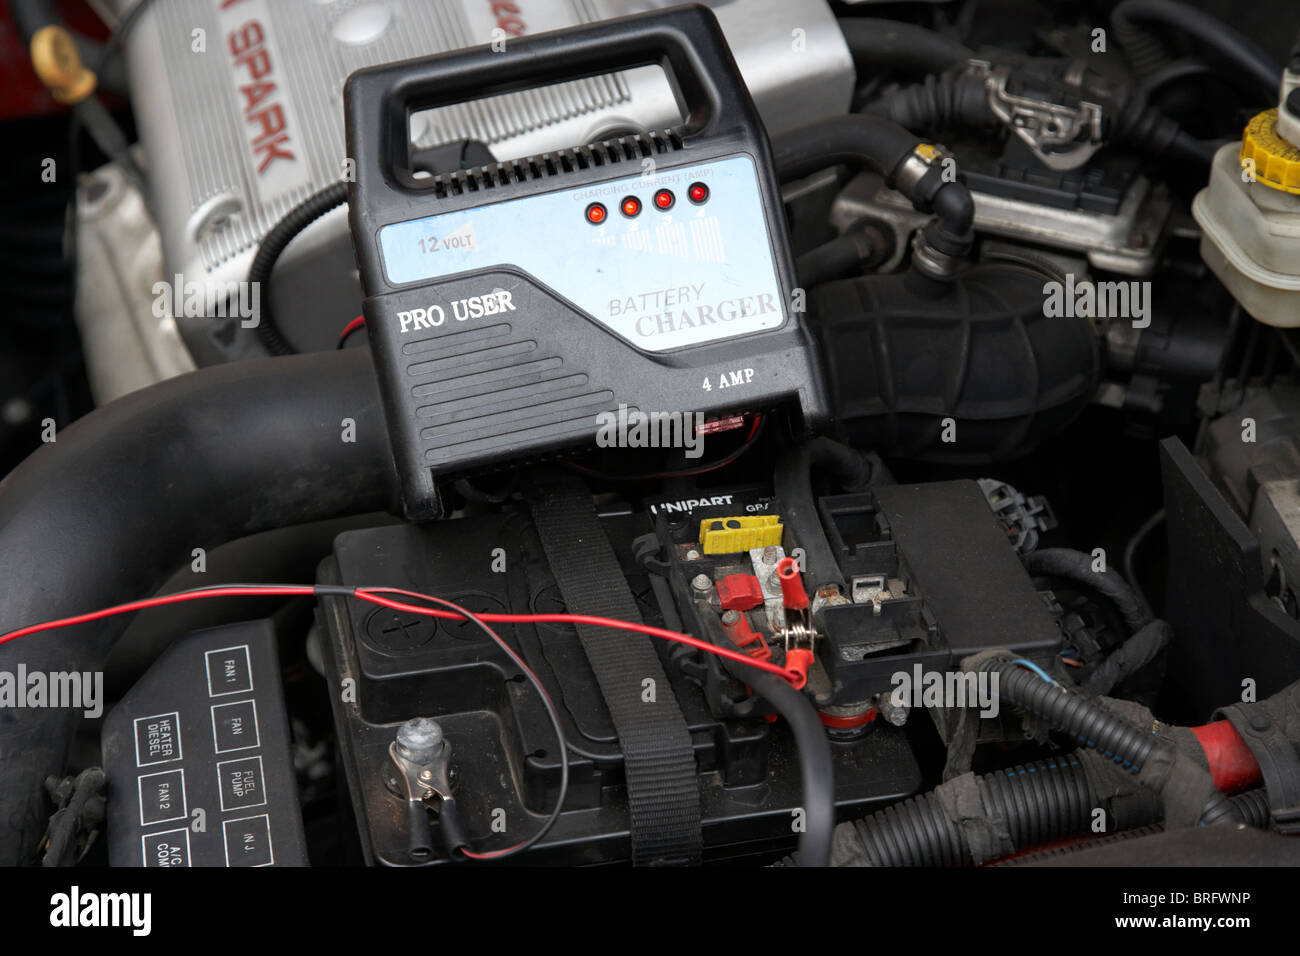 Where is the battery in a car - Stock Photo Mains Car Battery Charger Charging Flat Car Battery In Cold Weather